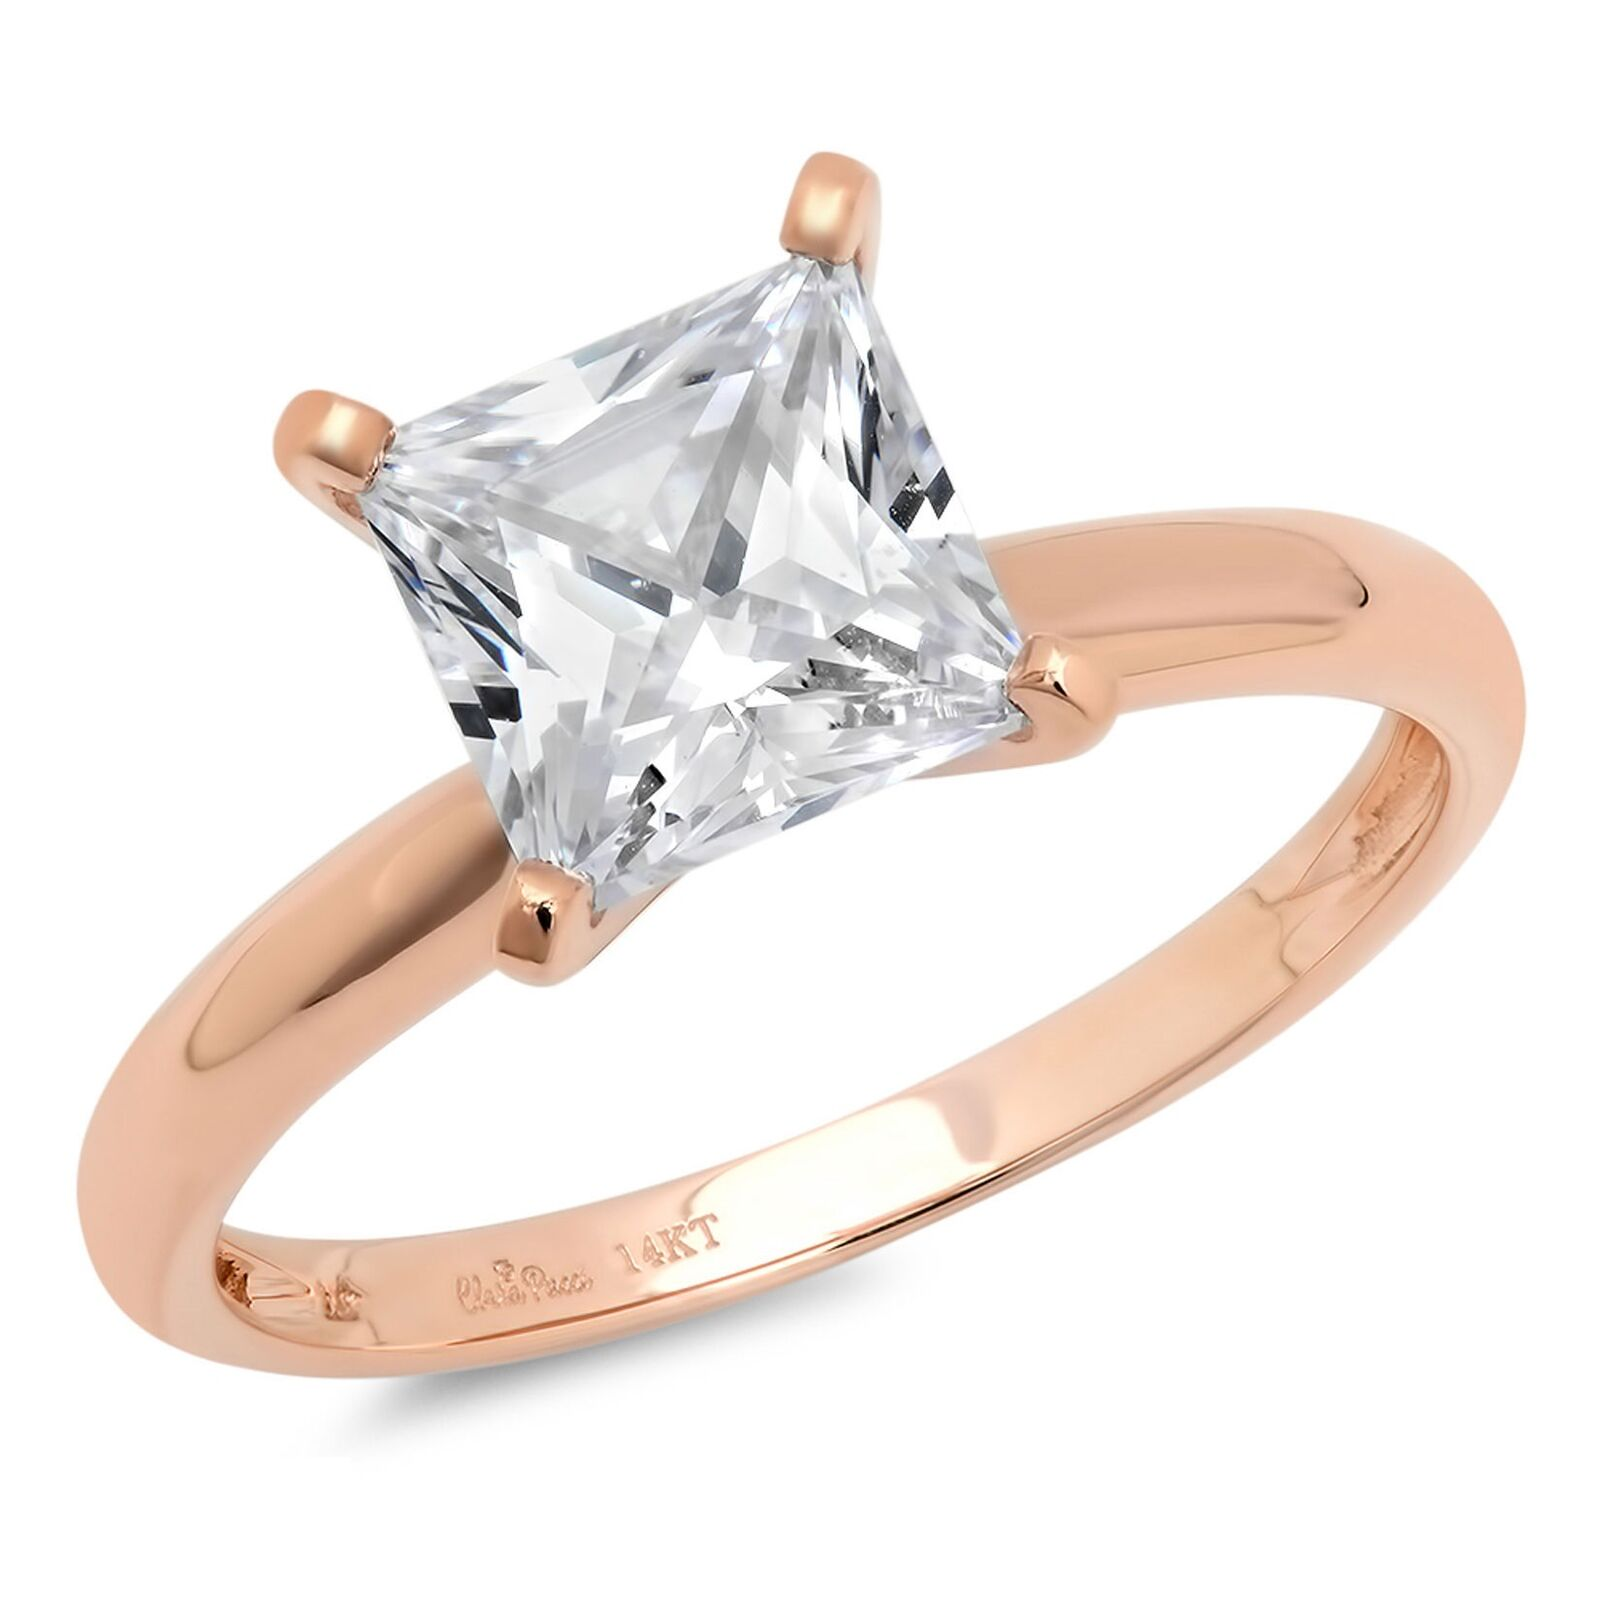 8549e7b25a0a6 2.6 Cut Wedding Bridal Engagement Anniversary Ring Solid pink gold ...